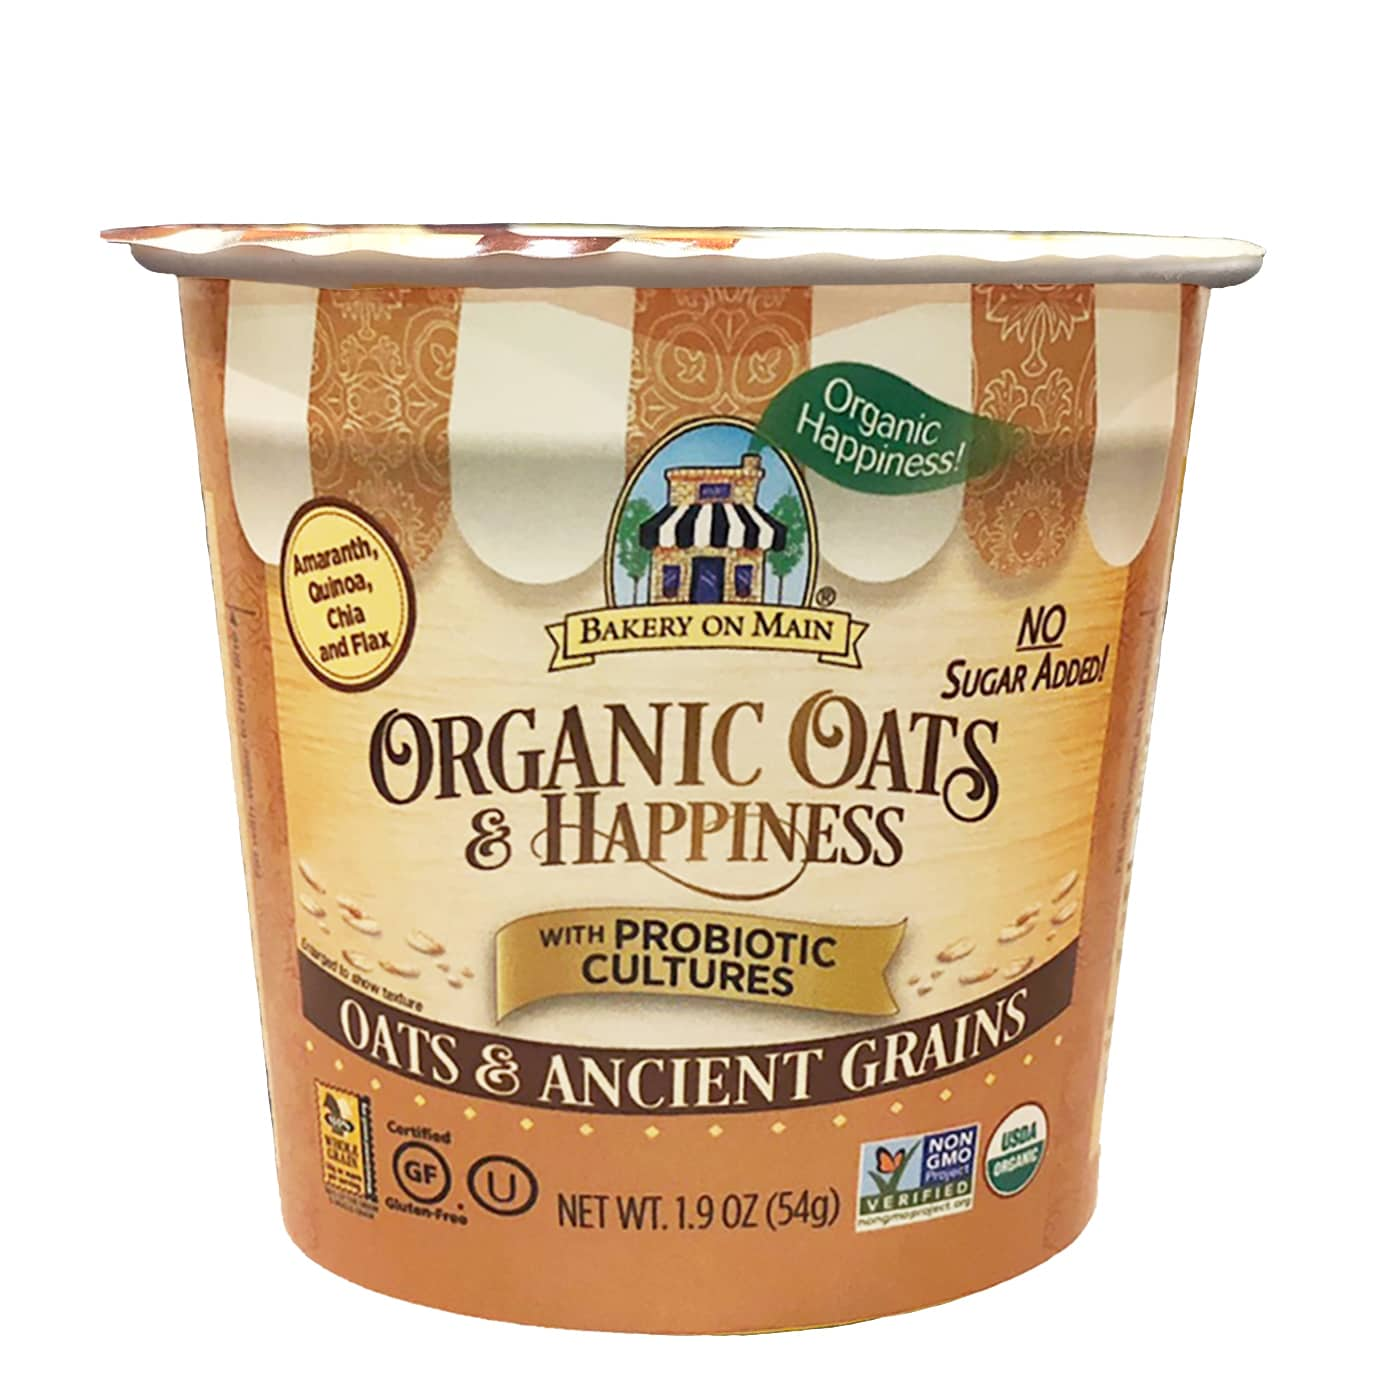 Bakery On Main Introduces Unsweetened Organic Oats & Happiness Oatmeal Cup